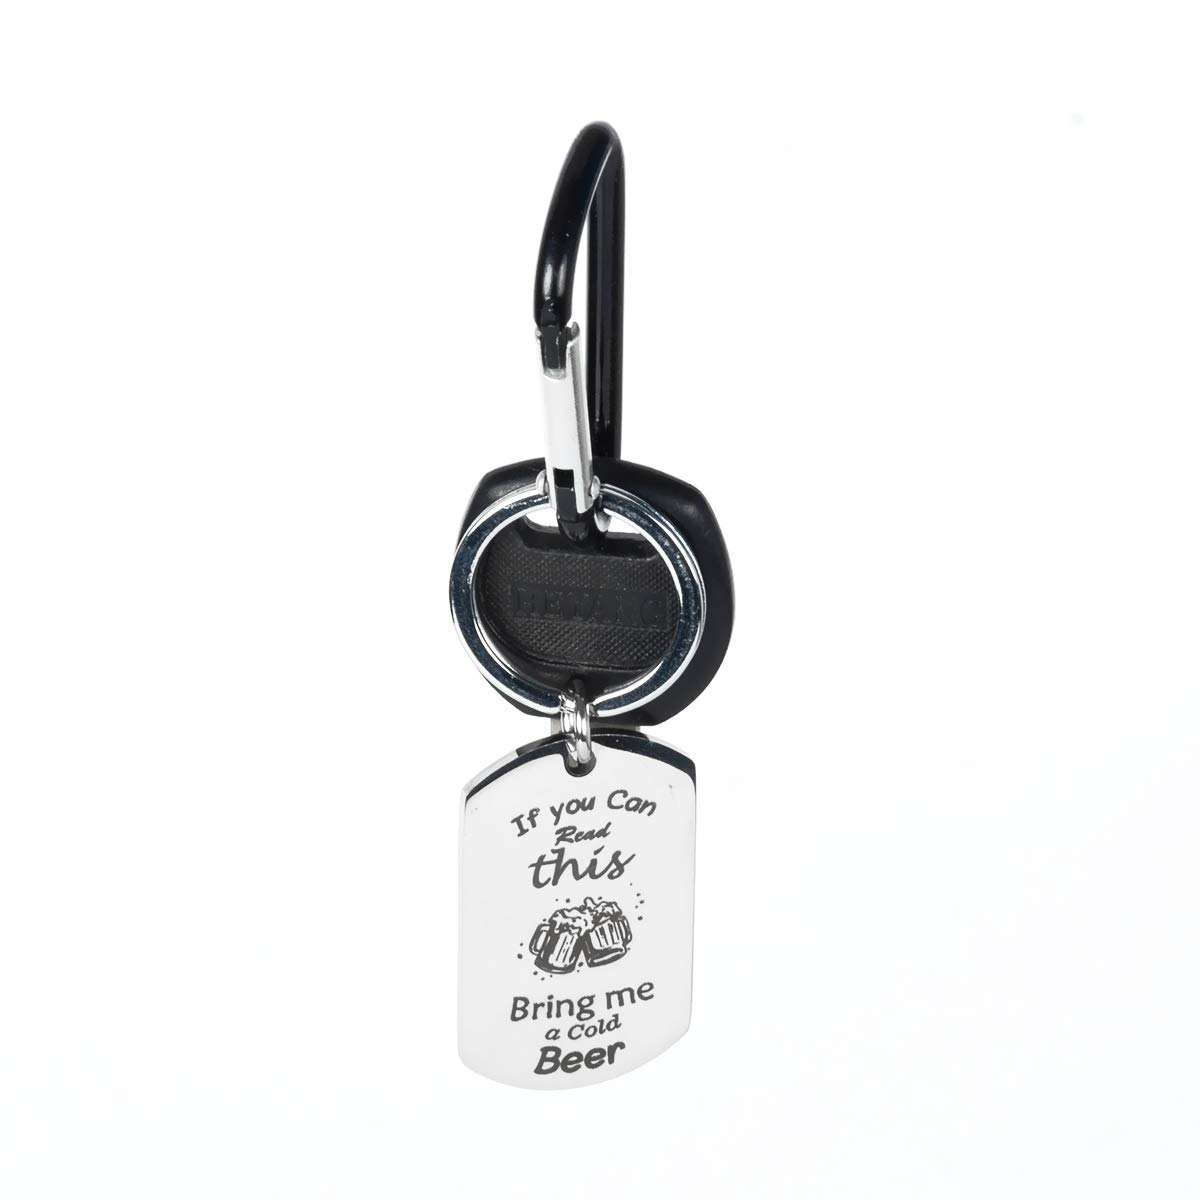 If You Can Read This, Bring Me Keychains - Beer, Wine, Coffee, Chocolate Theme - Funny Novelty Stainless Steel Key Chain Decoration Key Holder Ring Keys Organizer Gifts for Men and Women (Beer)